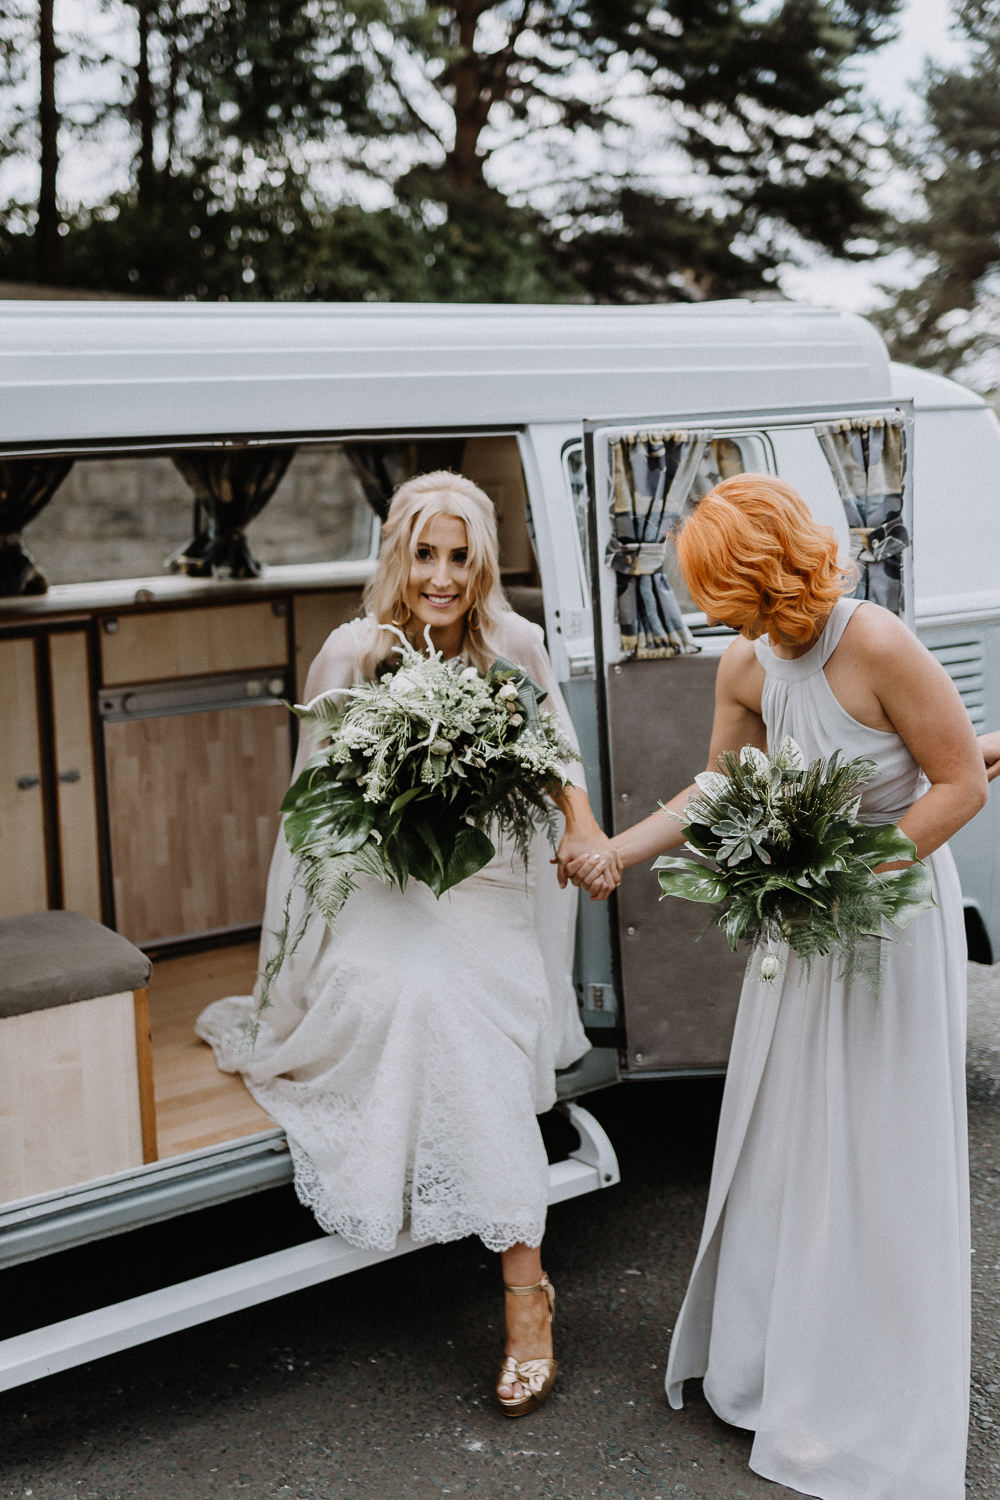 VW Campervan Transport Botanical Industrial Wedding Caitlin and Jones Photography